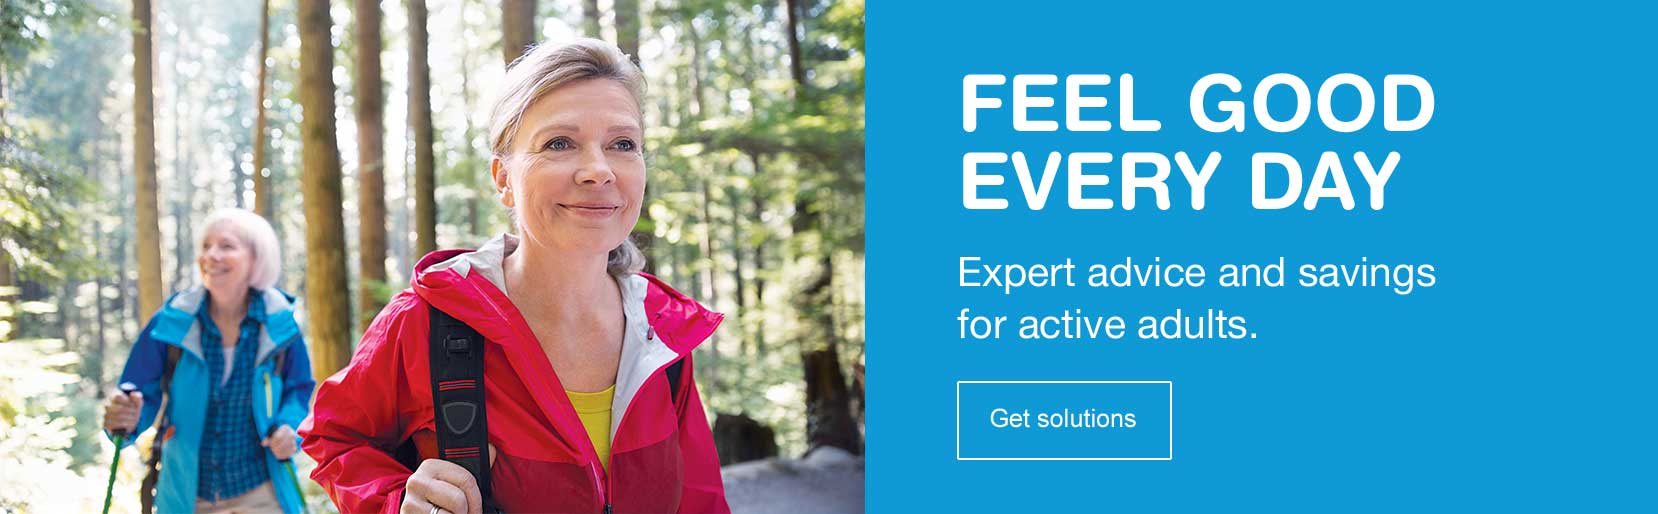 Feel good everyday. Expert advice and savings for active adults. Get solutions.